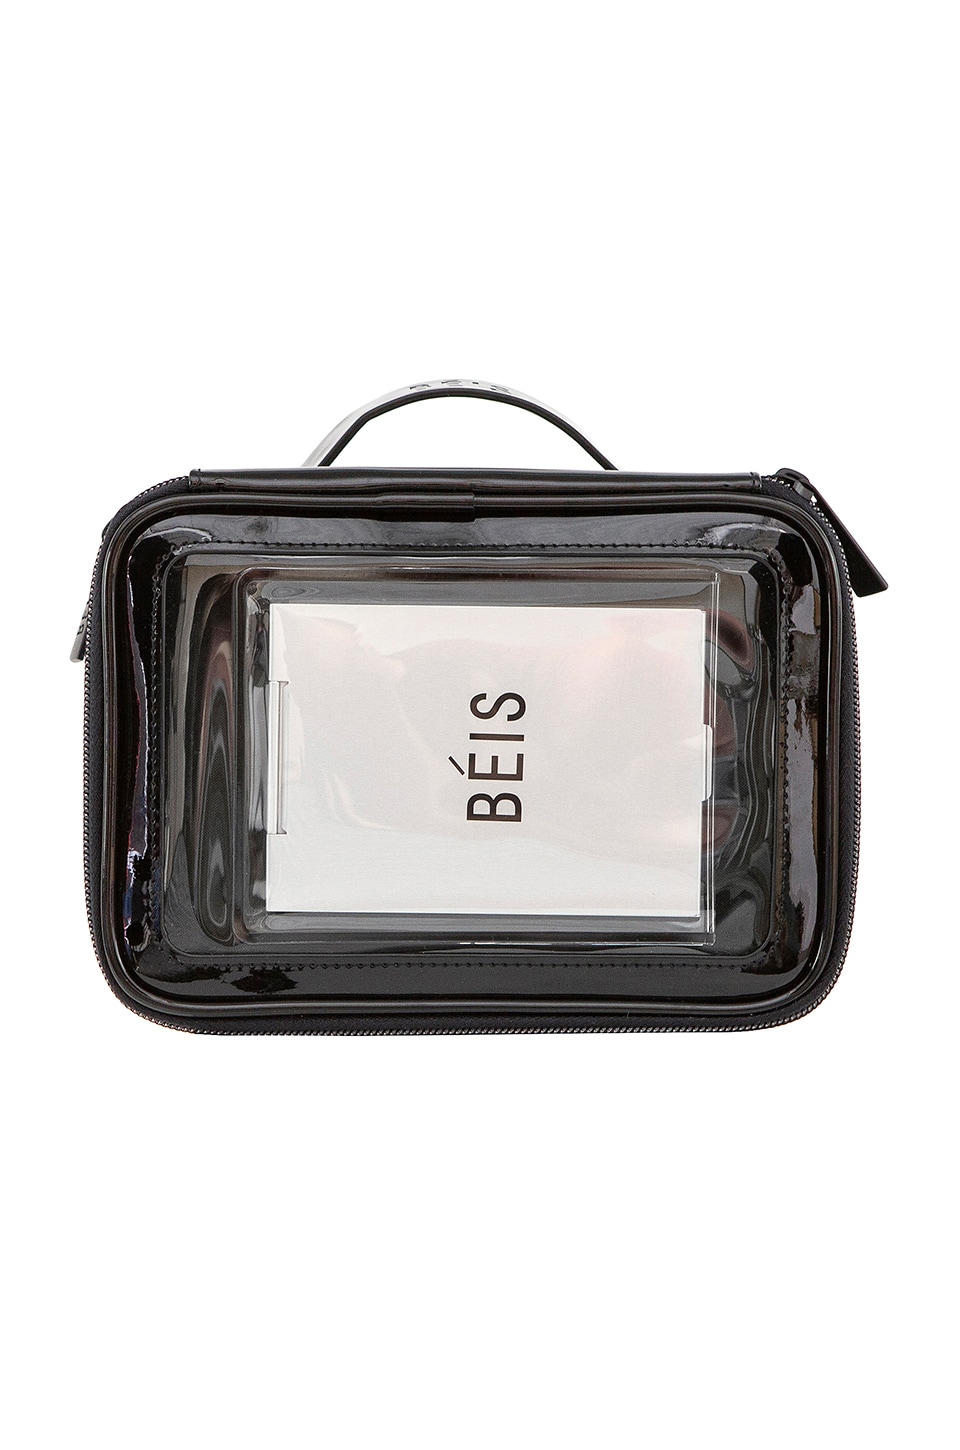 BEIS The Carry On Cosmetic Case in Black